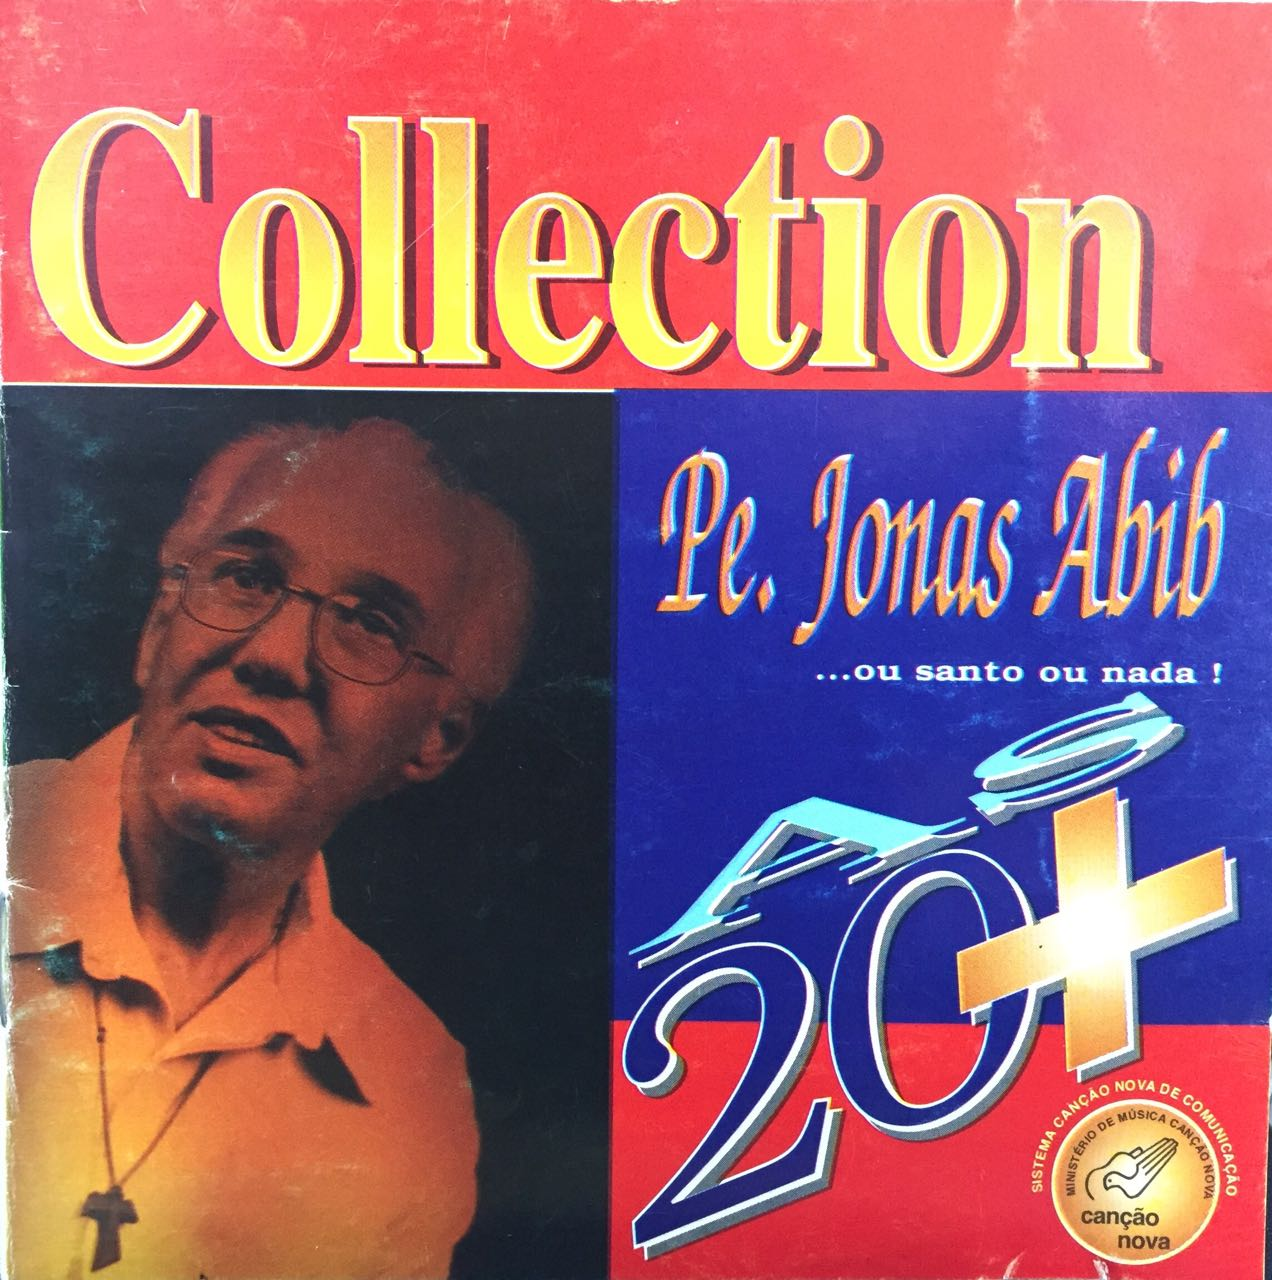 Collection: As 20 + - 1994